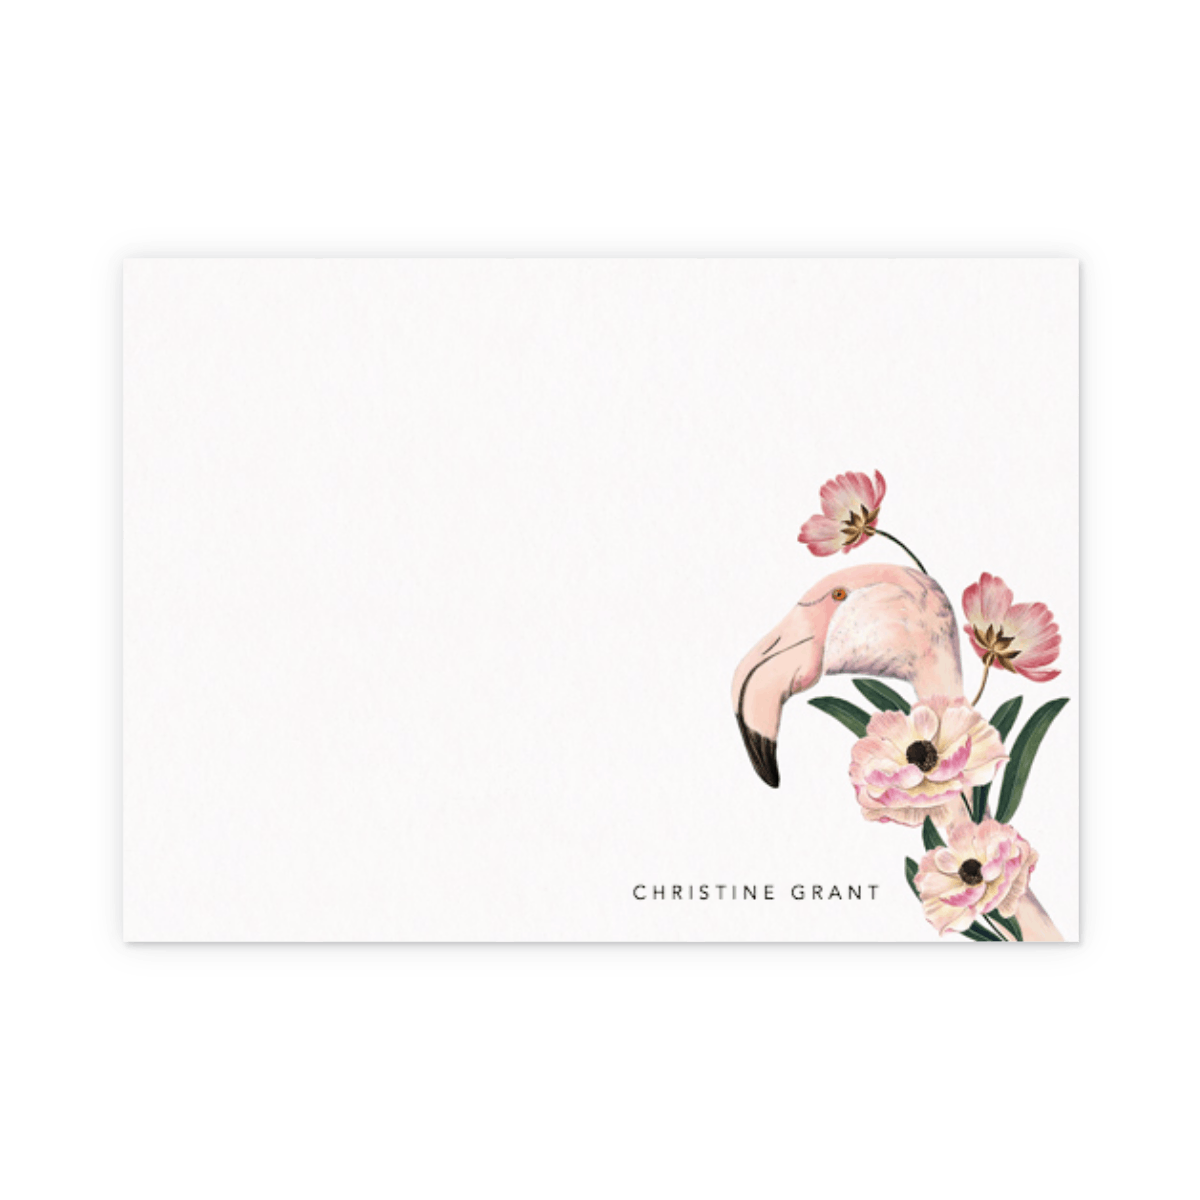 Https%3a%2f%2fwww.papier.com%2fproduct image%2f24229%2f10%2fpink flamingo 6065 vorderseite 1498039076.png?ixlib=rb 1.1